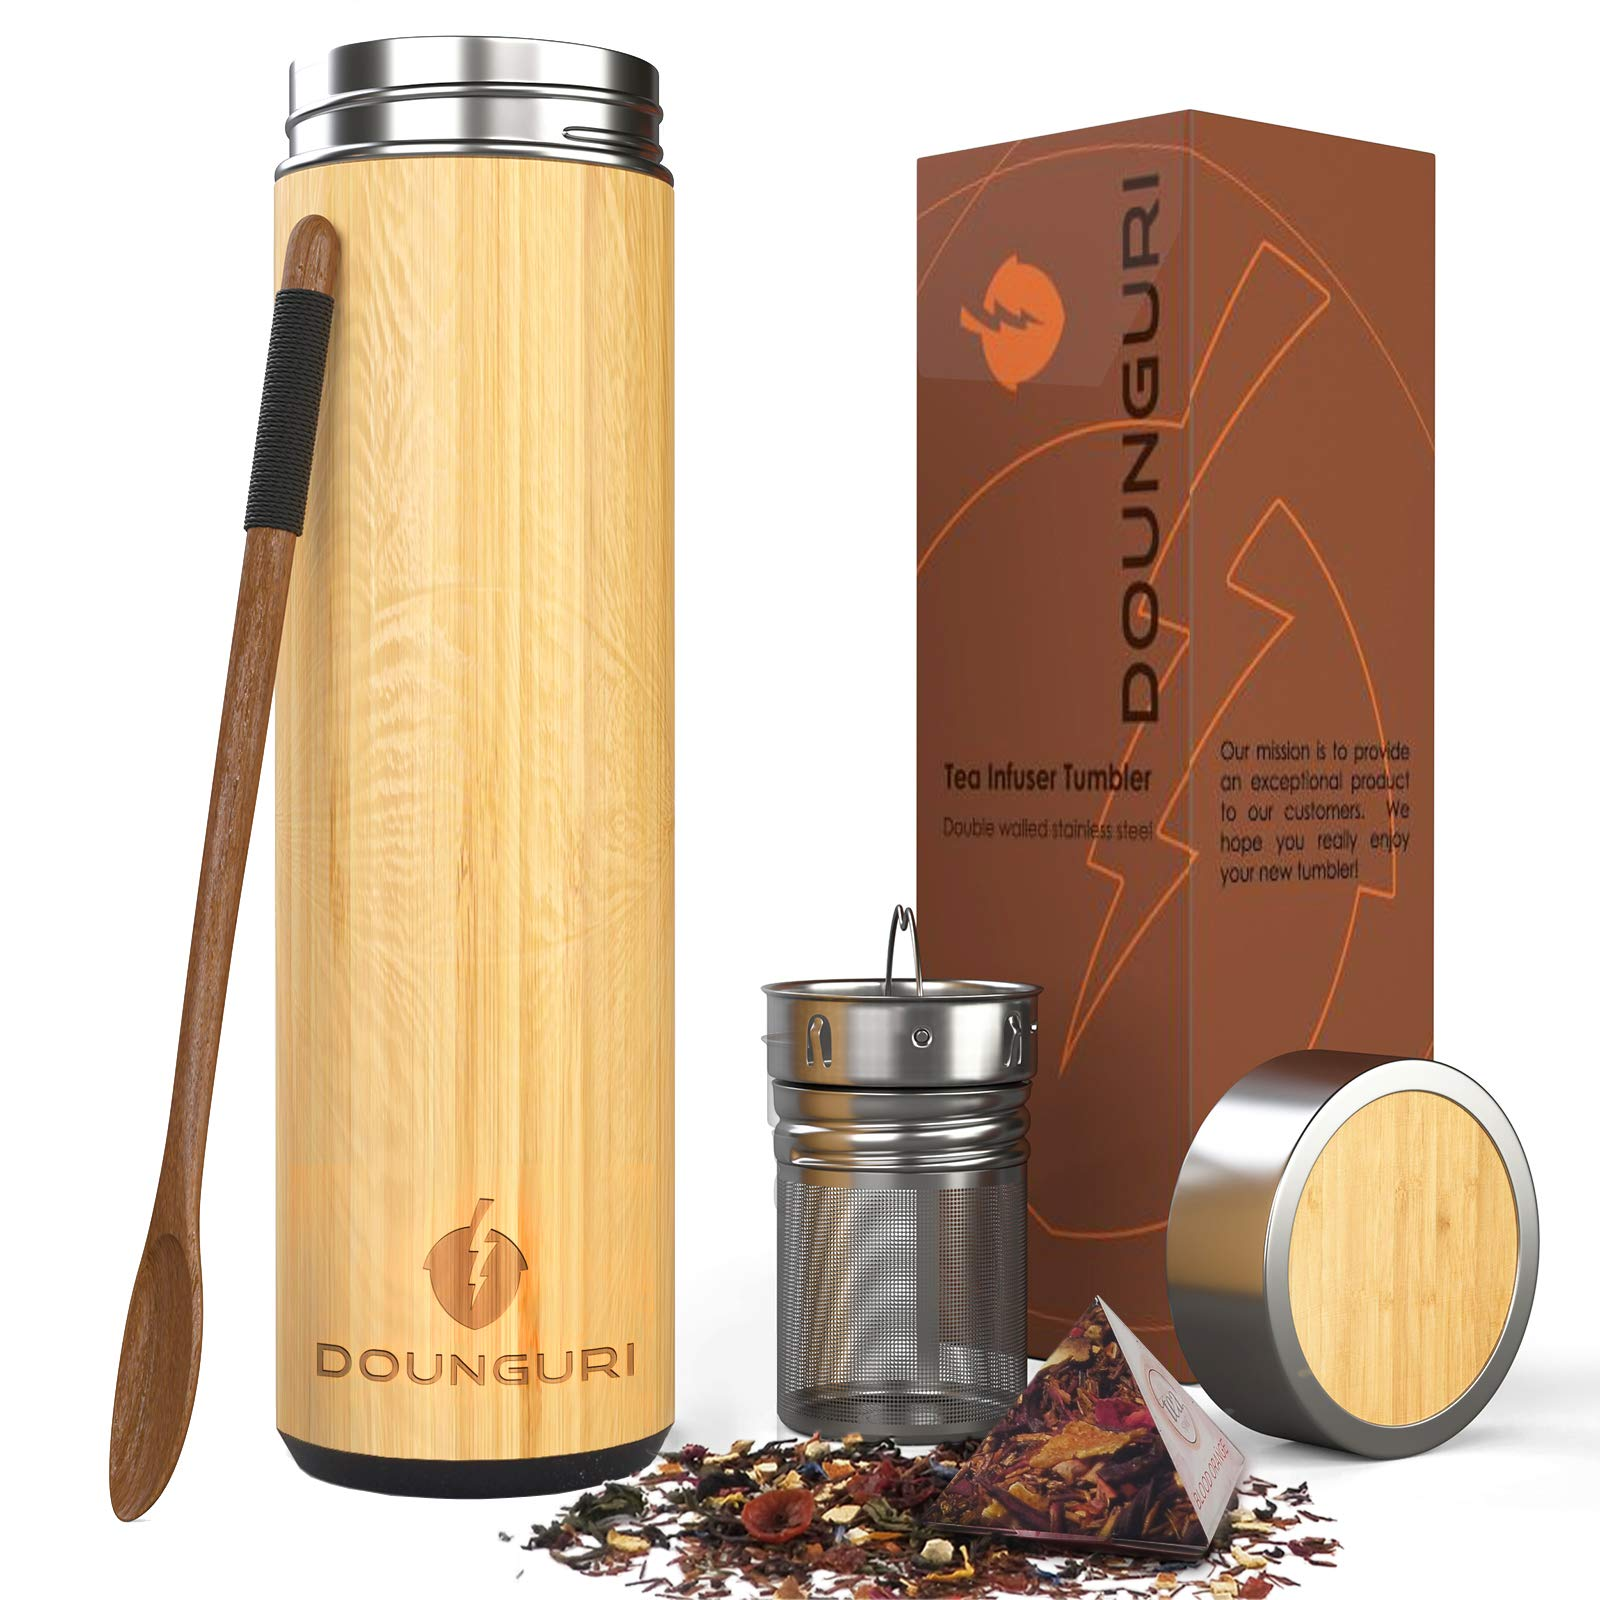 DOUNGURI Bamboo Tea Bottle Tumbler with Strainer Infuser - 14 oz. 100% Organic Bamboo Tea Thermos for Loose Leaf with Filter - Perfect Fruit Water Bottle and Travel Mug / Leak Proof